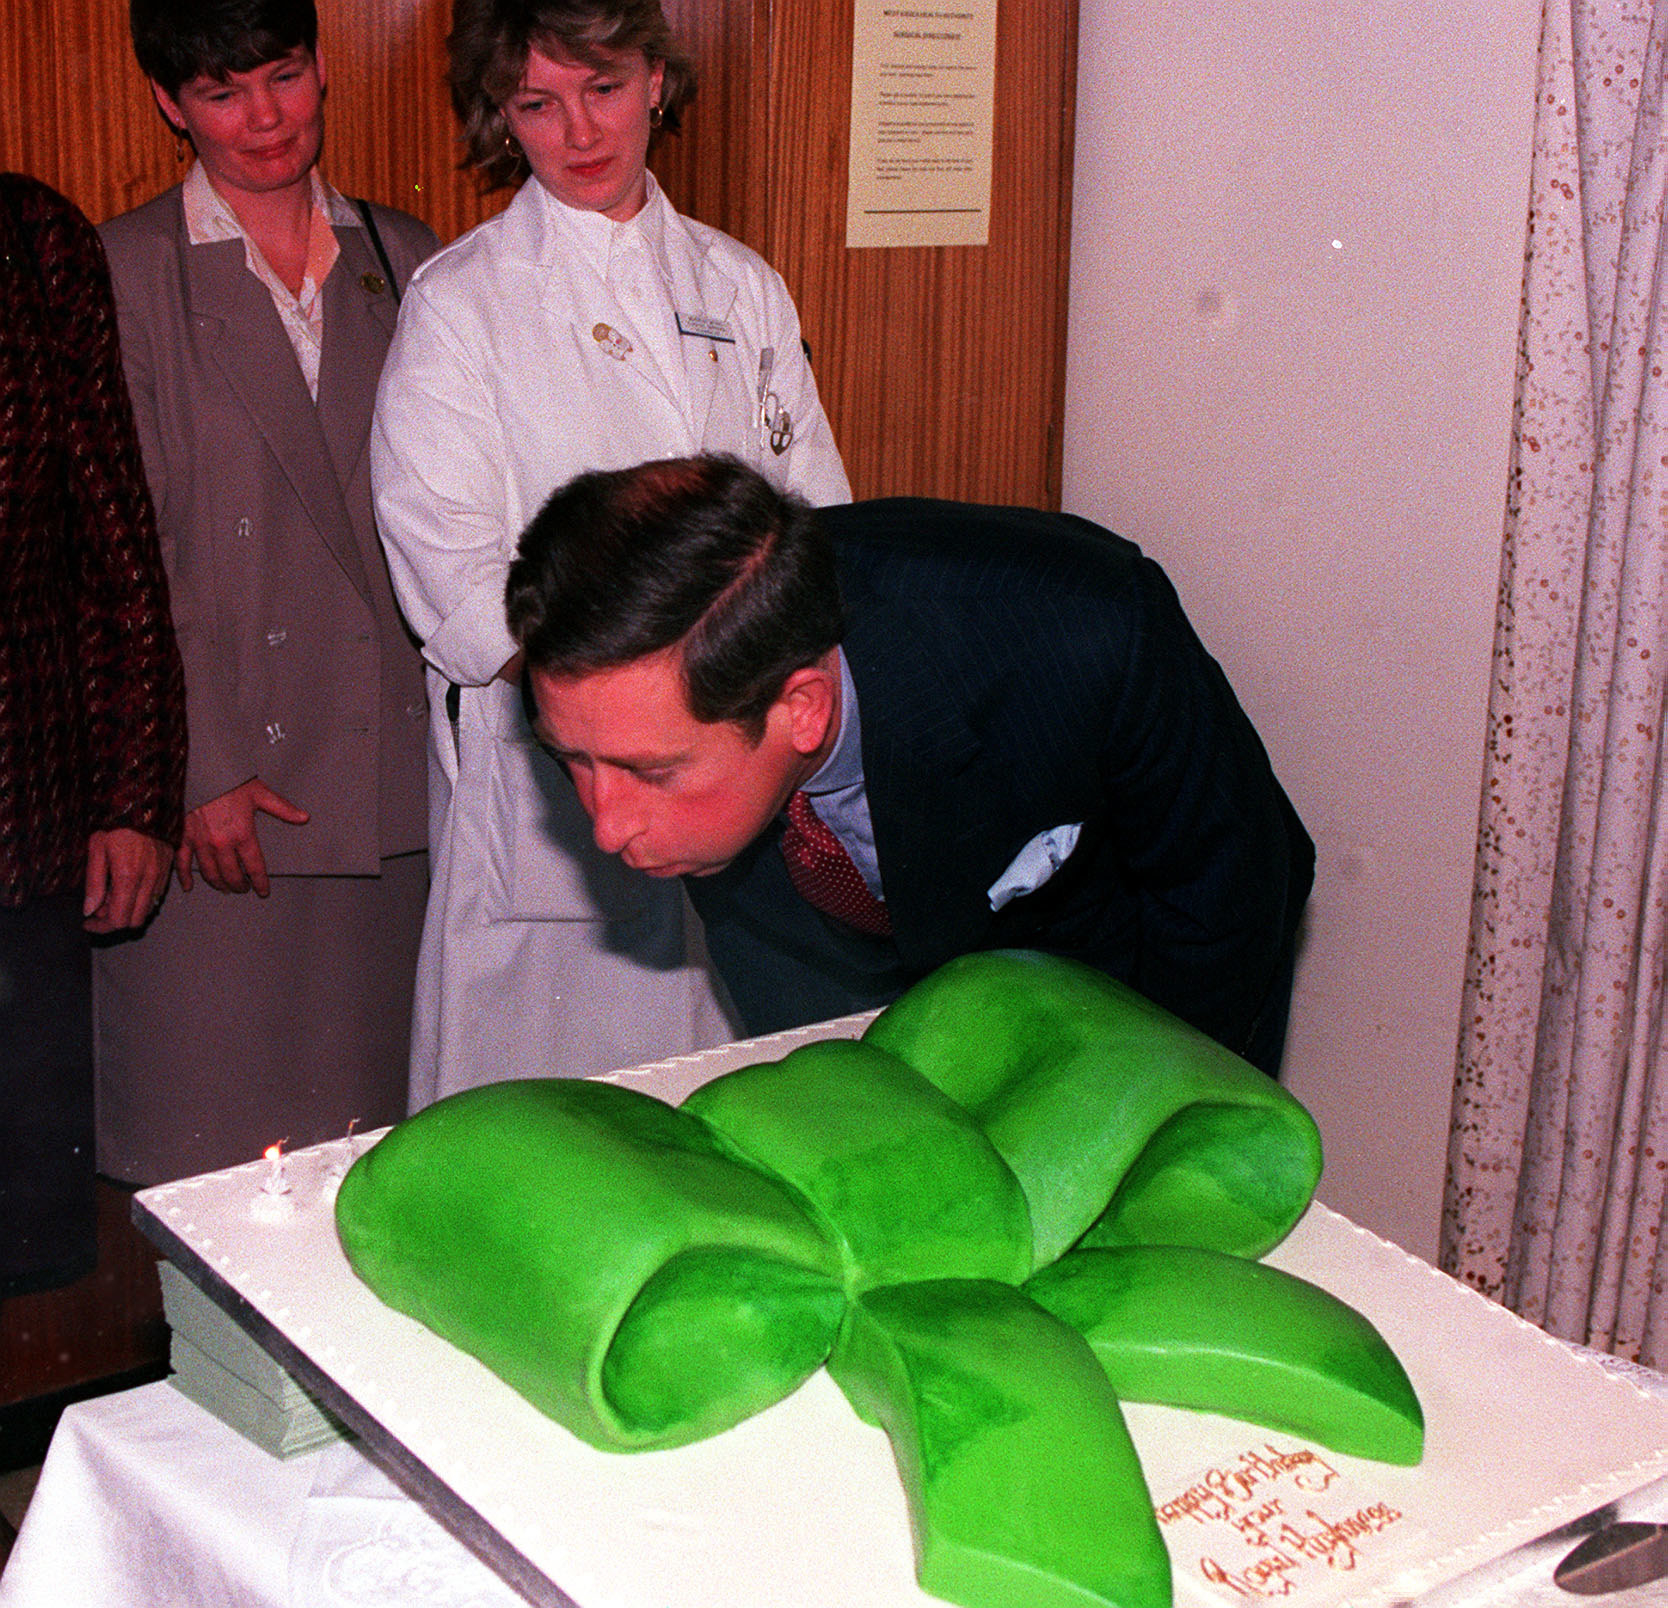 Prince Charles blowing out candles on a cake with an enormous green bow